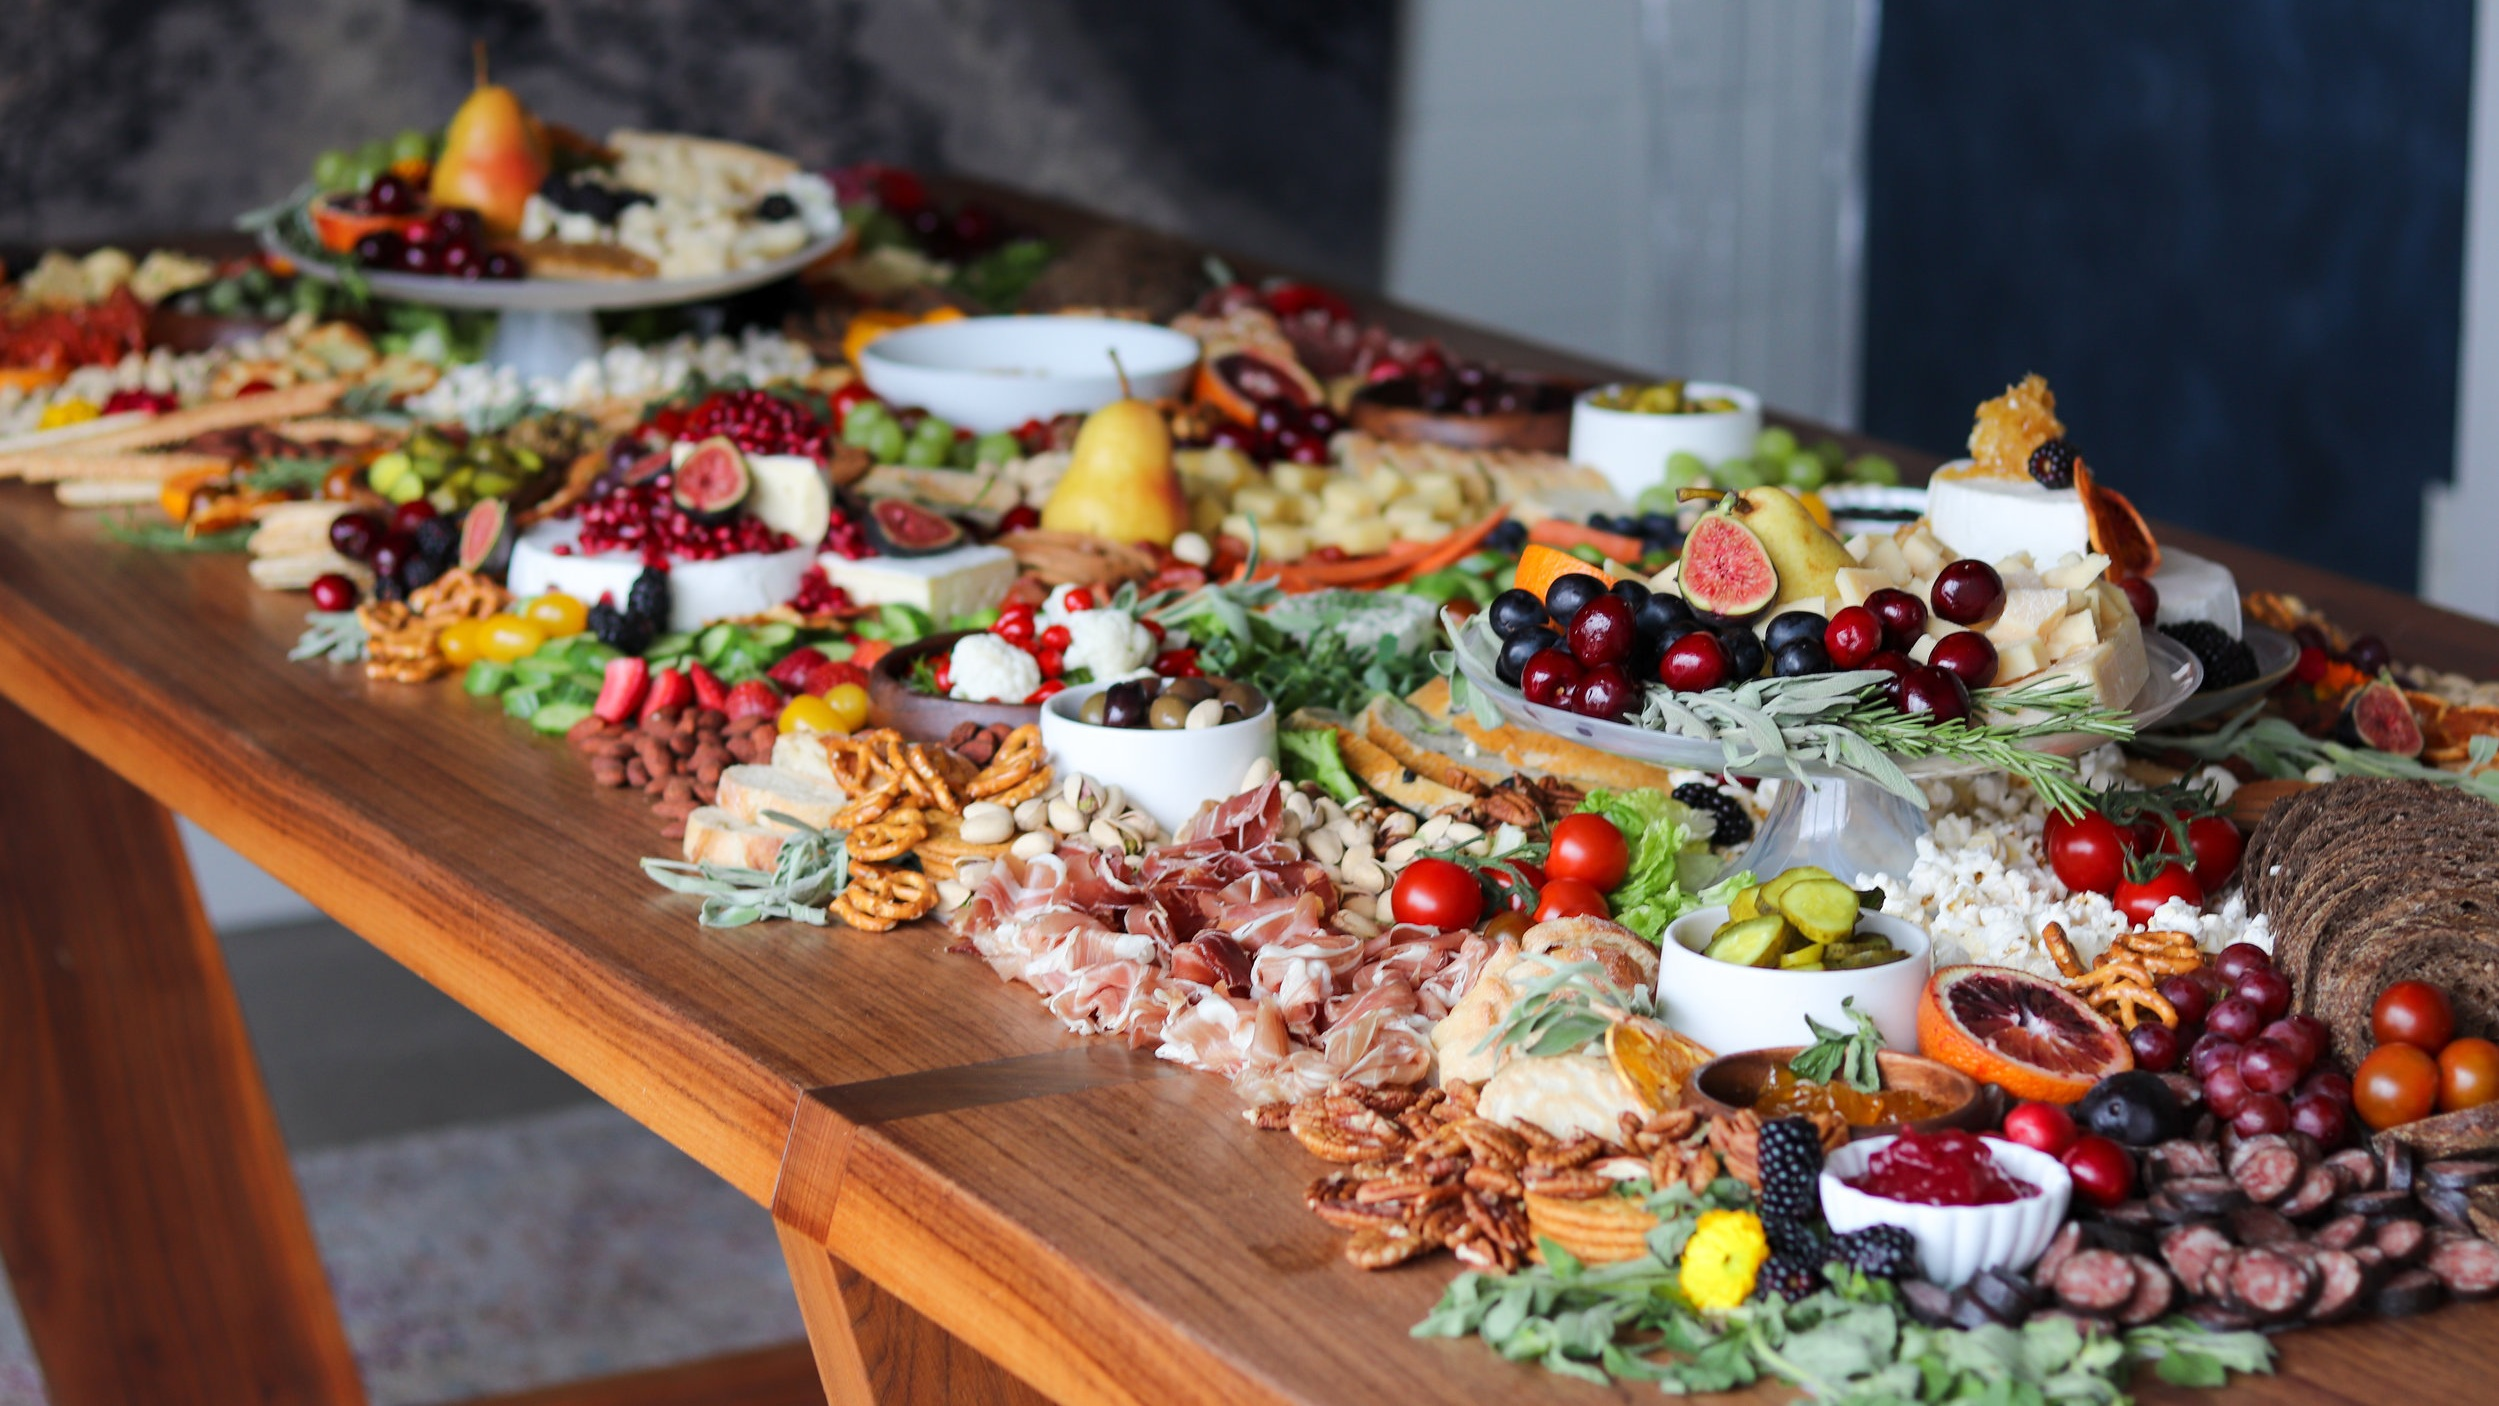 Grazing Tables - Designed for Events Serving 40+Absolute Luxury. This is where Brie & Banquet's artfulness is fully expressed. Voluptuous, elegant and layered displays styled onsite atop any flat, stable surface with our glass, ceramic and wood tiers and displayware.